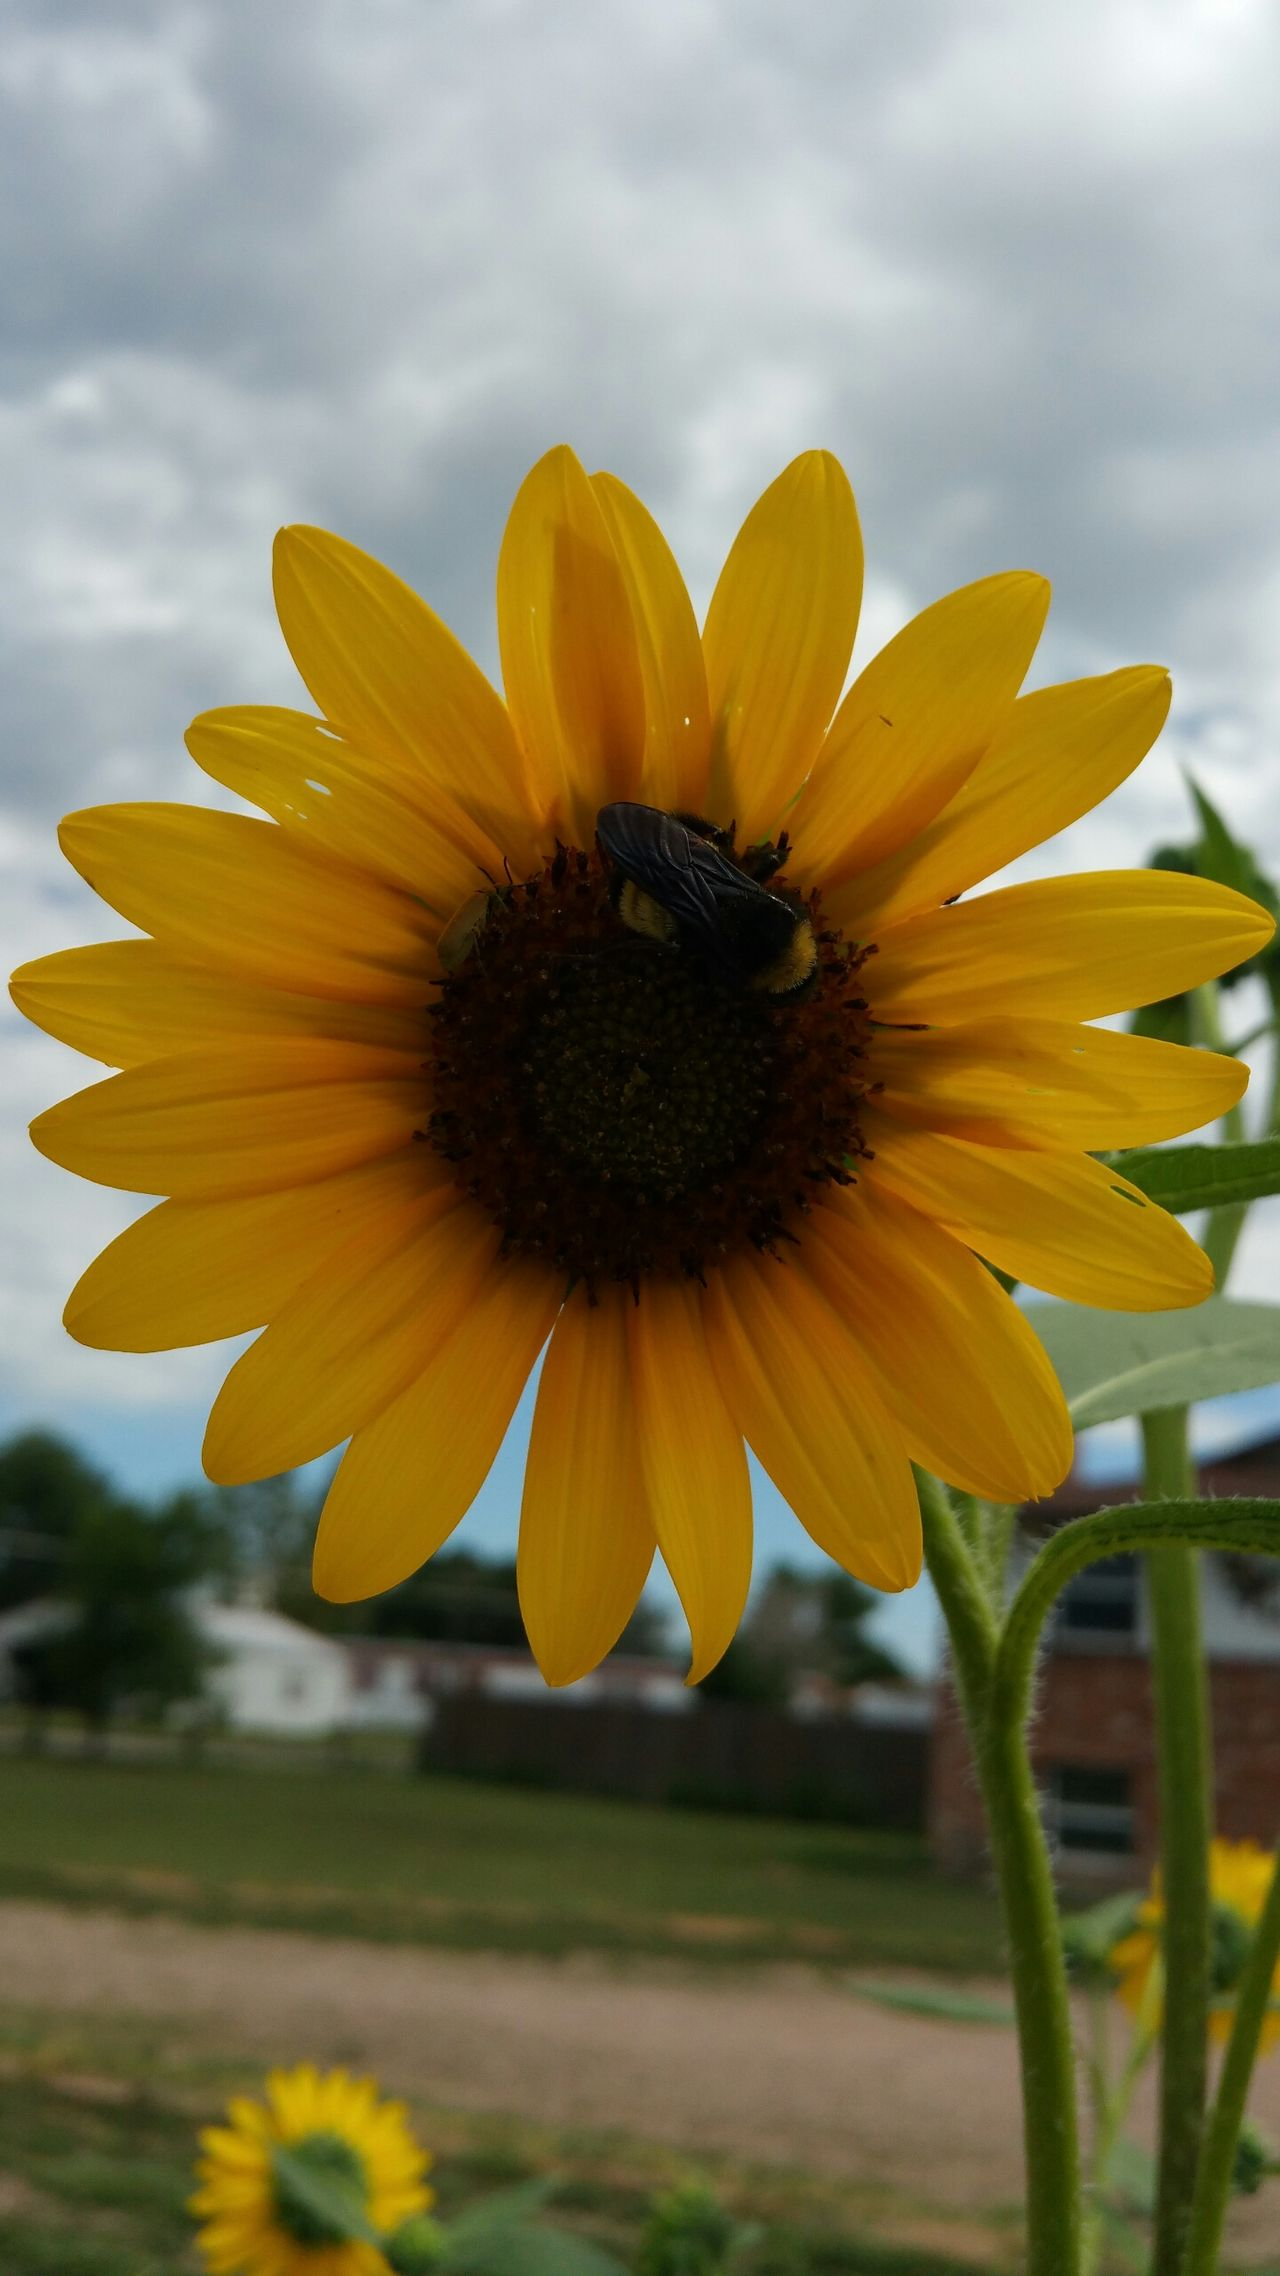 Nice Big Sunflower A Bumblebee Clouds In The Sky Nature Bright Yellow Petals